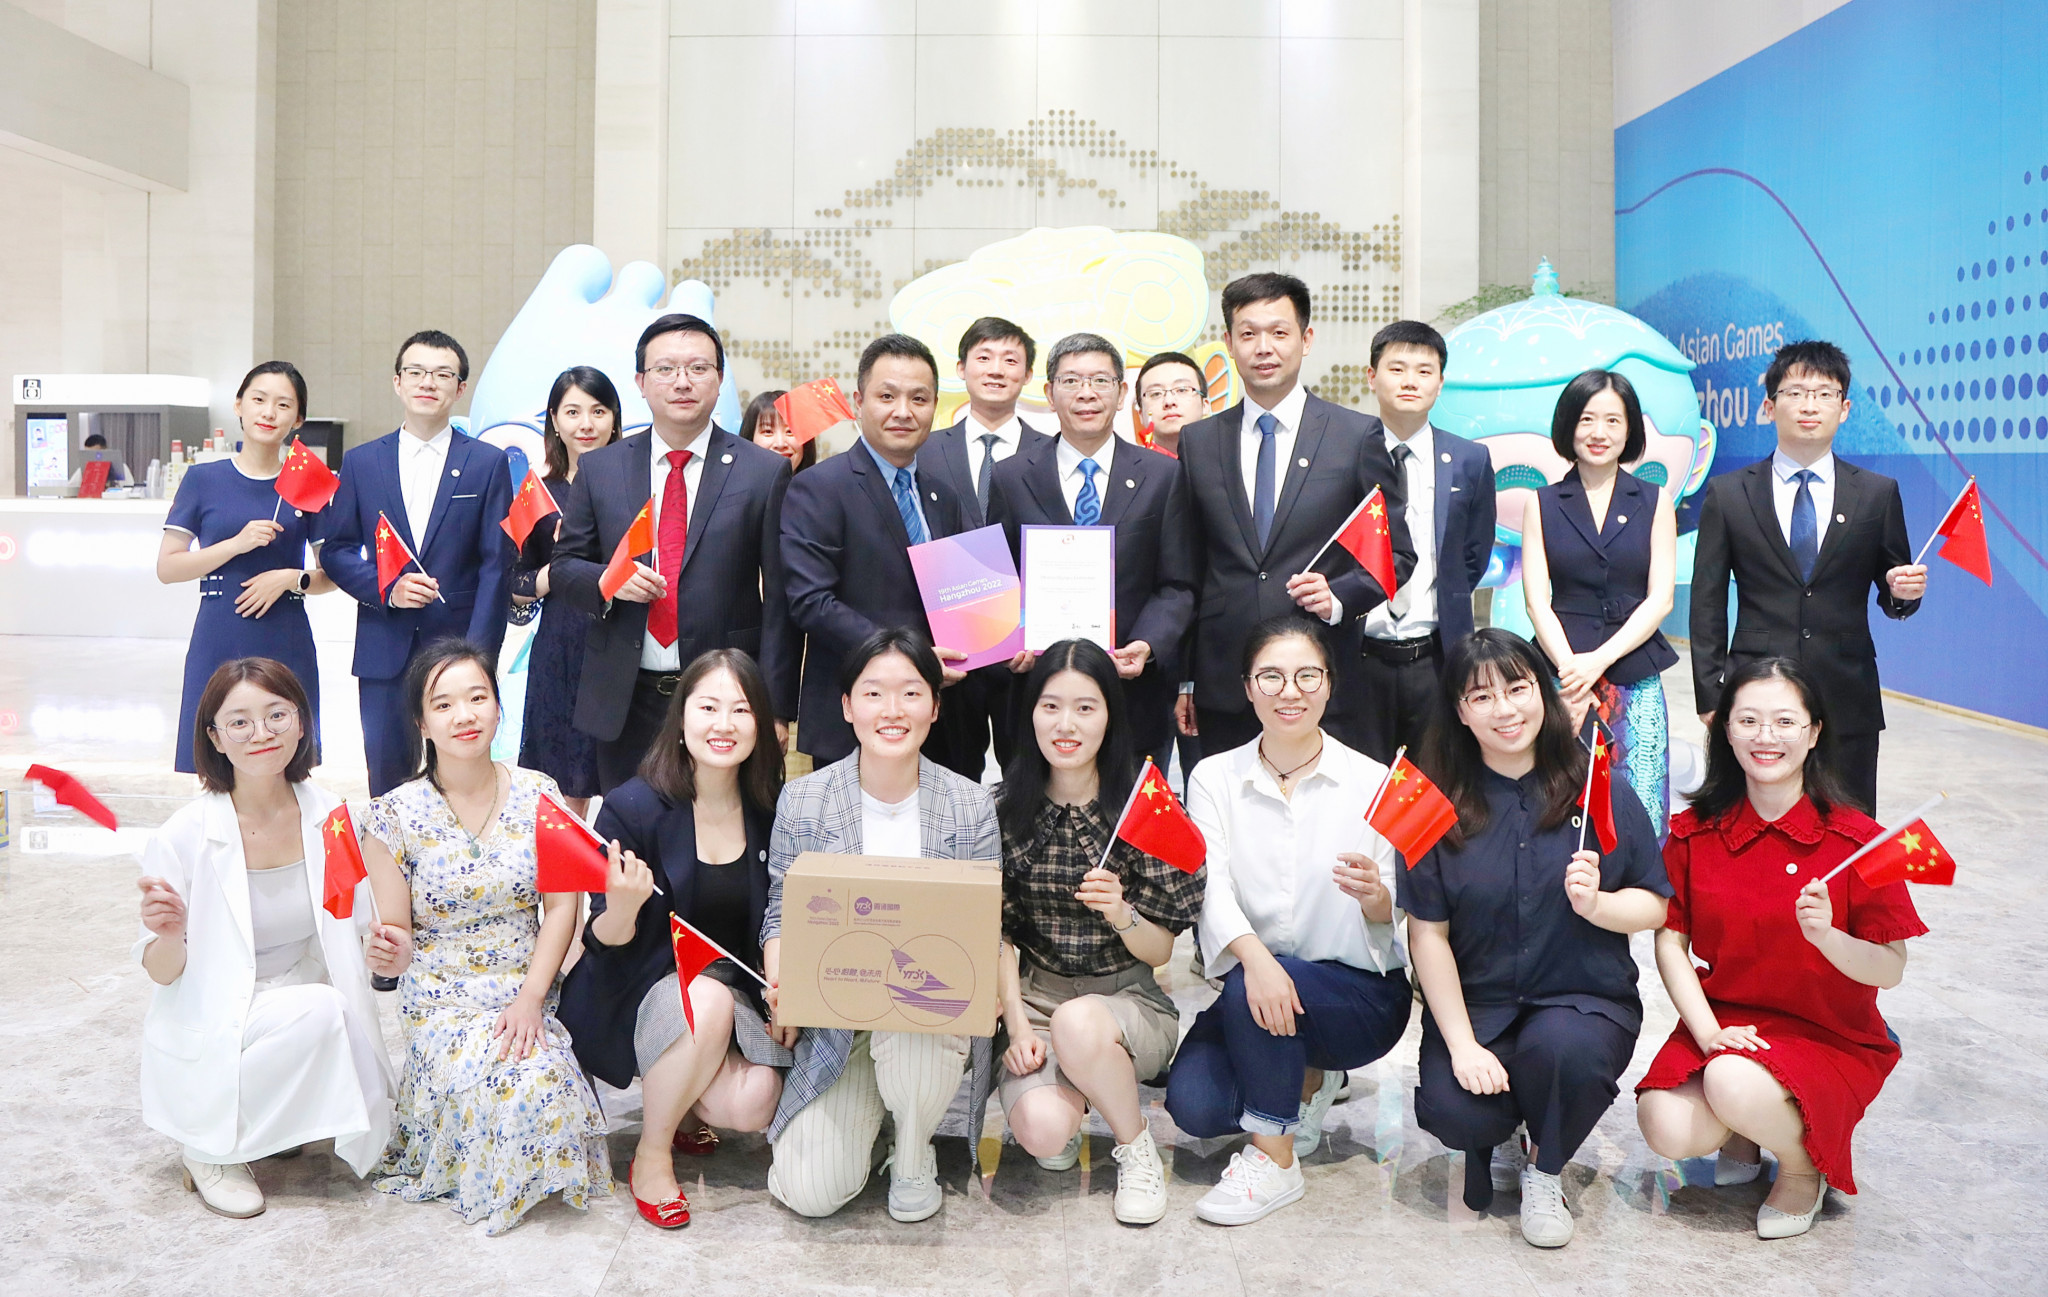 Hangzhou 2022 organisers held a ceremony to mark 400 days until the scheduled start of the next Asian Games ©Hangzhou 2022